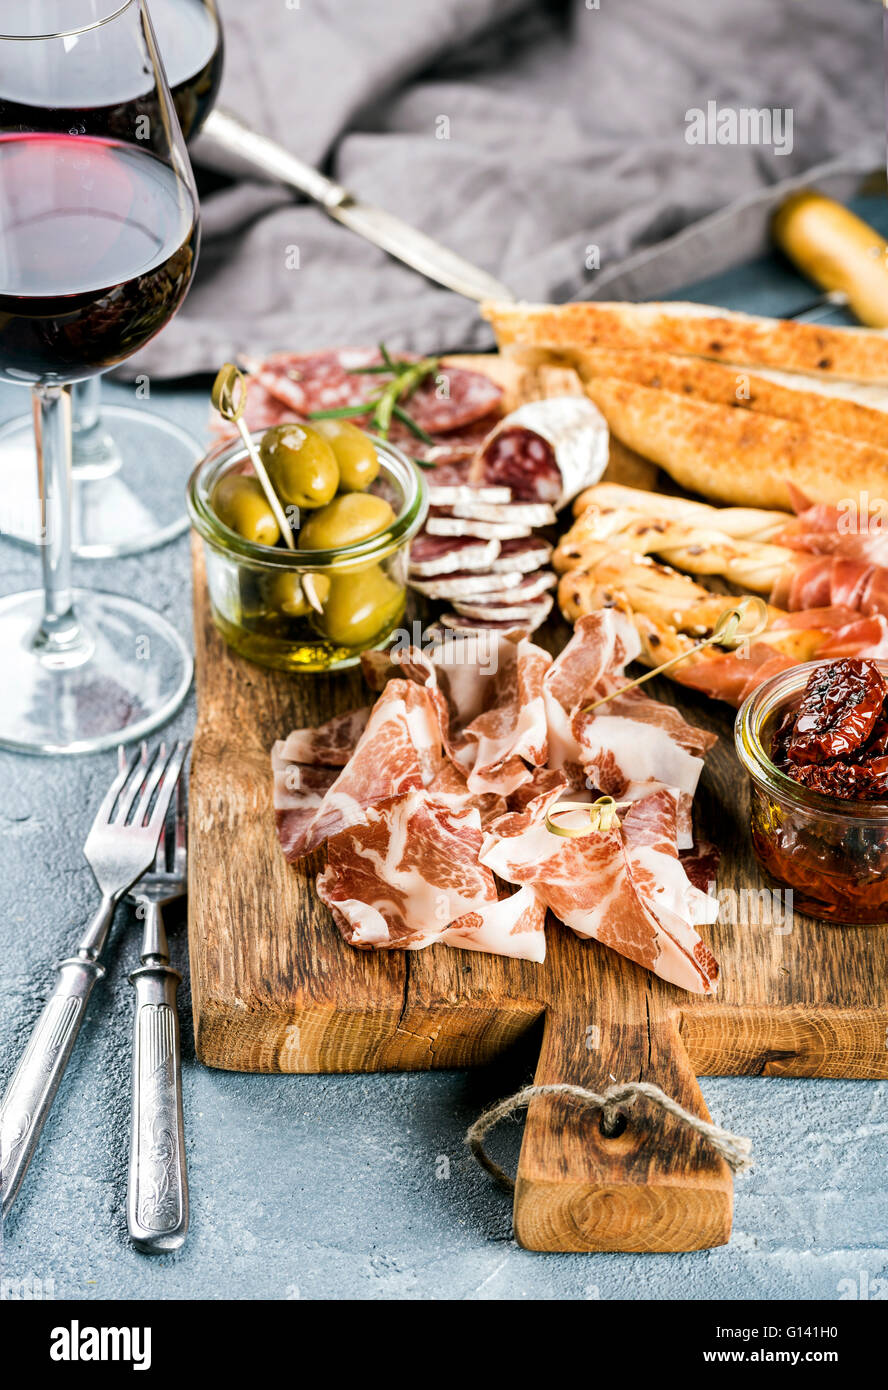 Meat appetizer selection. Salami, prosciutto, bread sticks, baguette, olives and sun-dried tomatoes, two glasses - Stock Image